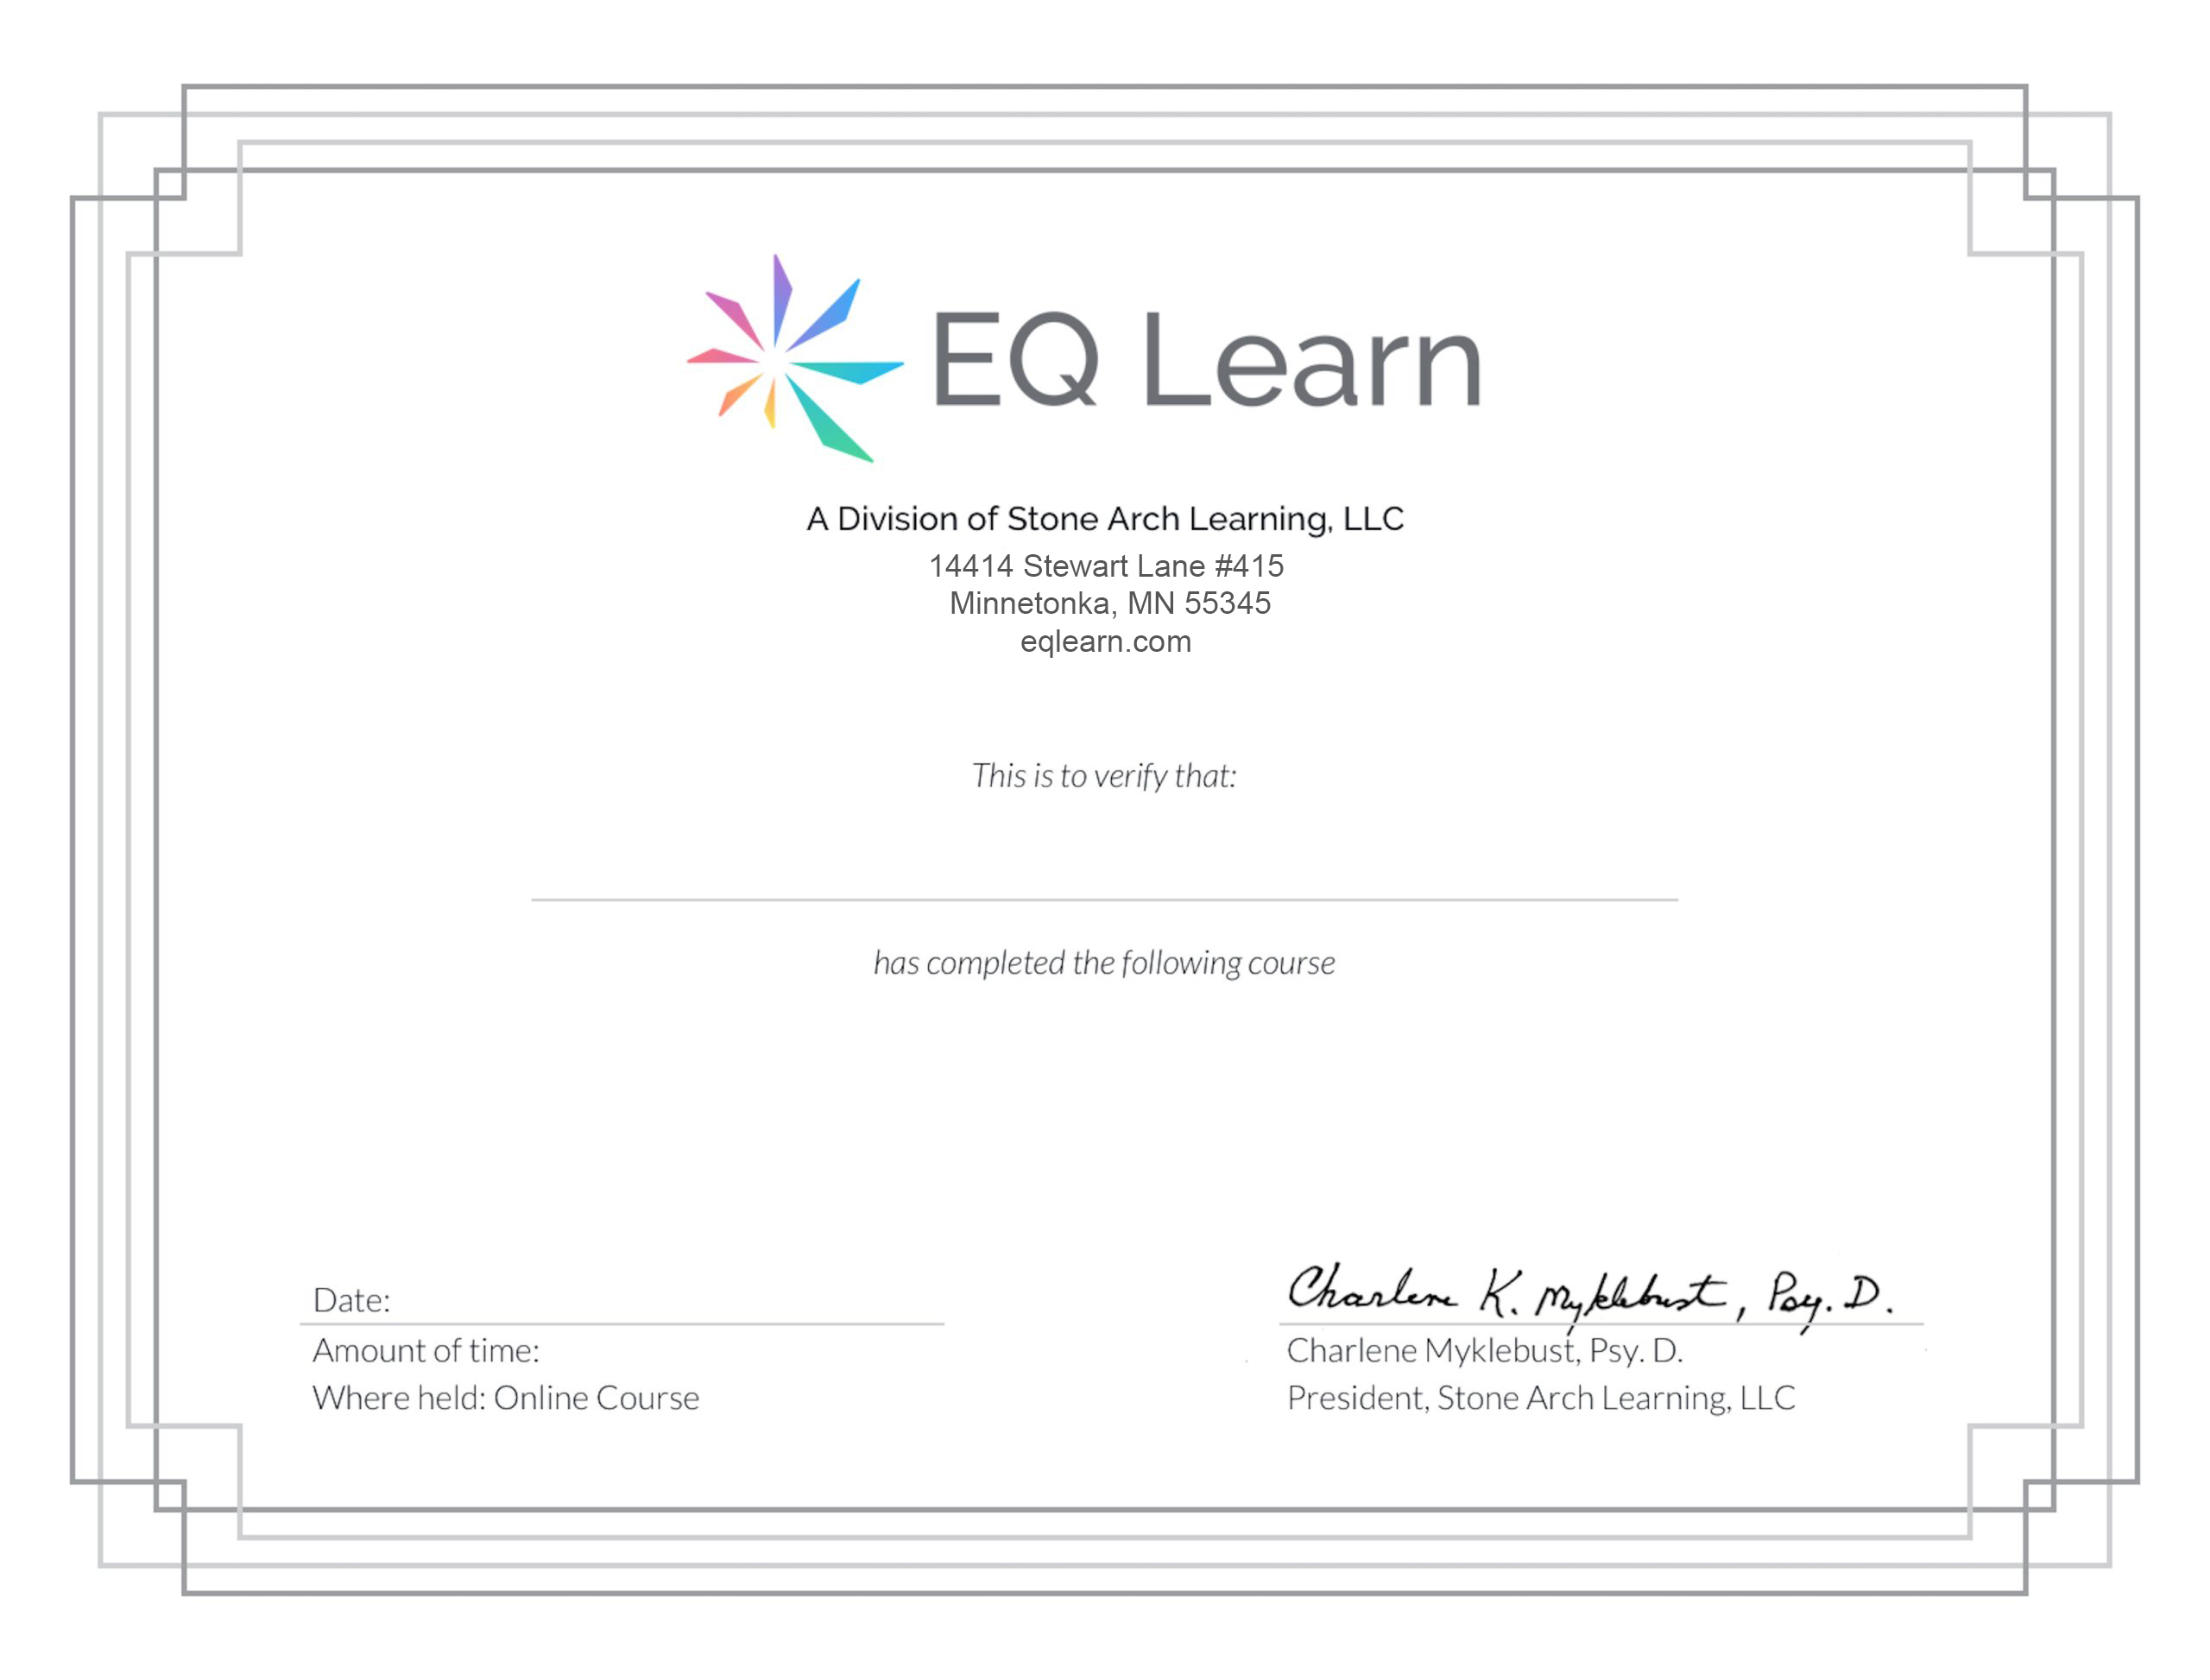 Course Completion Certificate